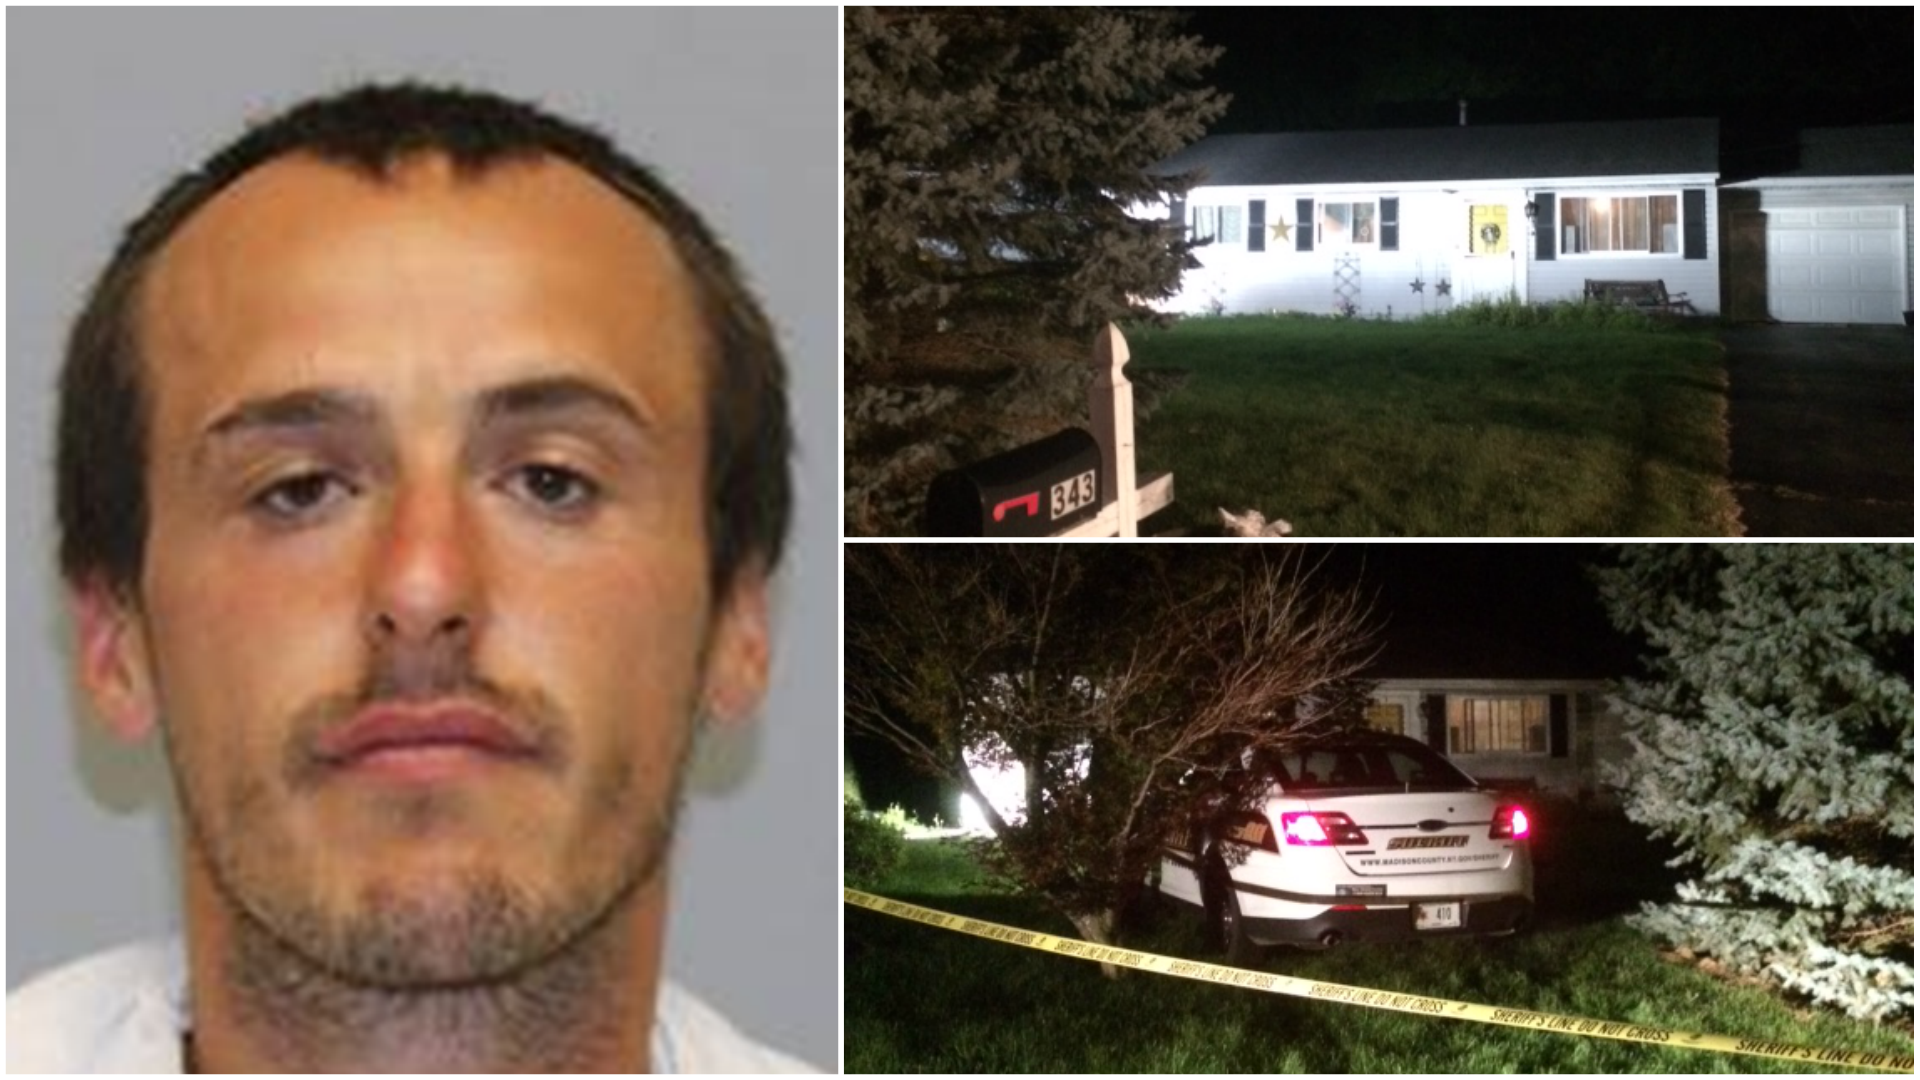 Deputy seriously injured after being exposed to one-pot meth cooker in Chittenango/ Photos courtesy Madison County Sheriff's Office